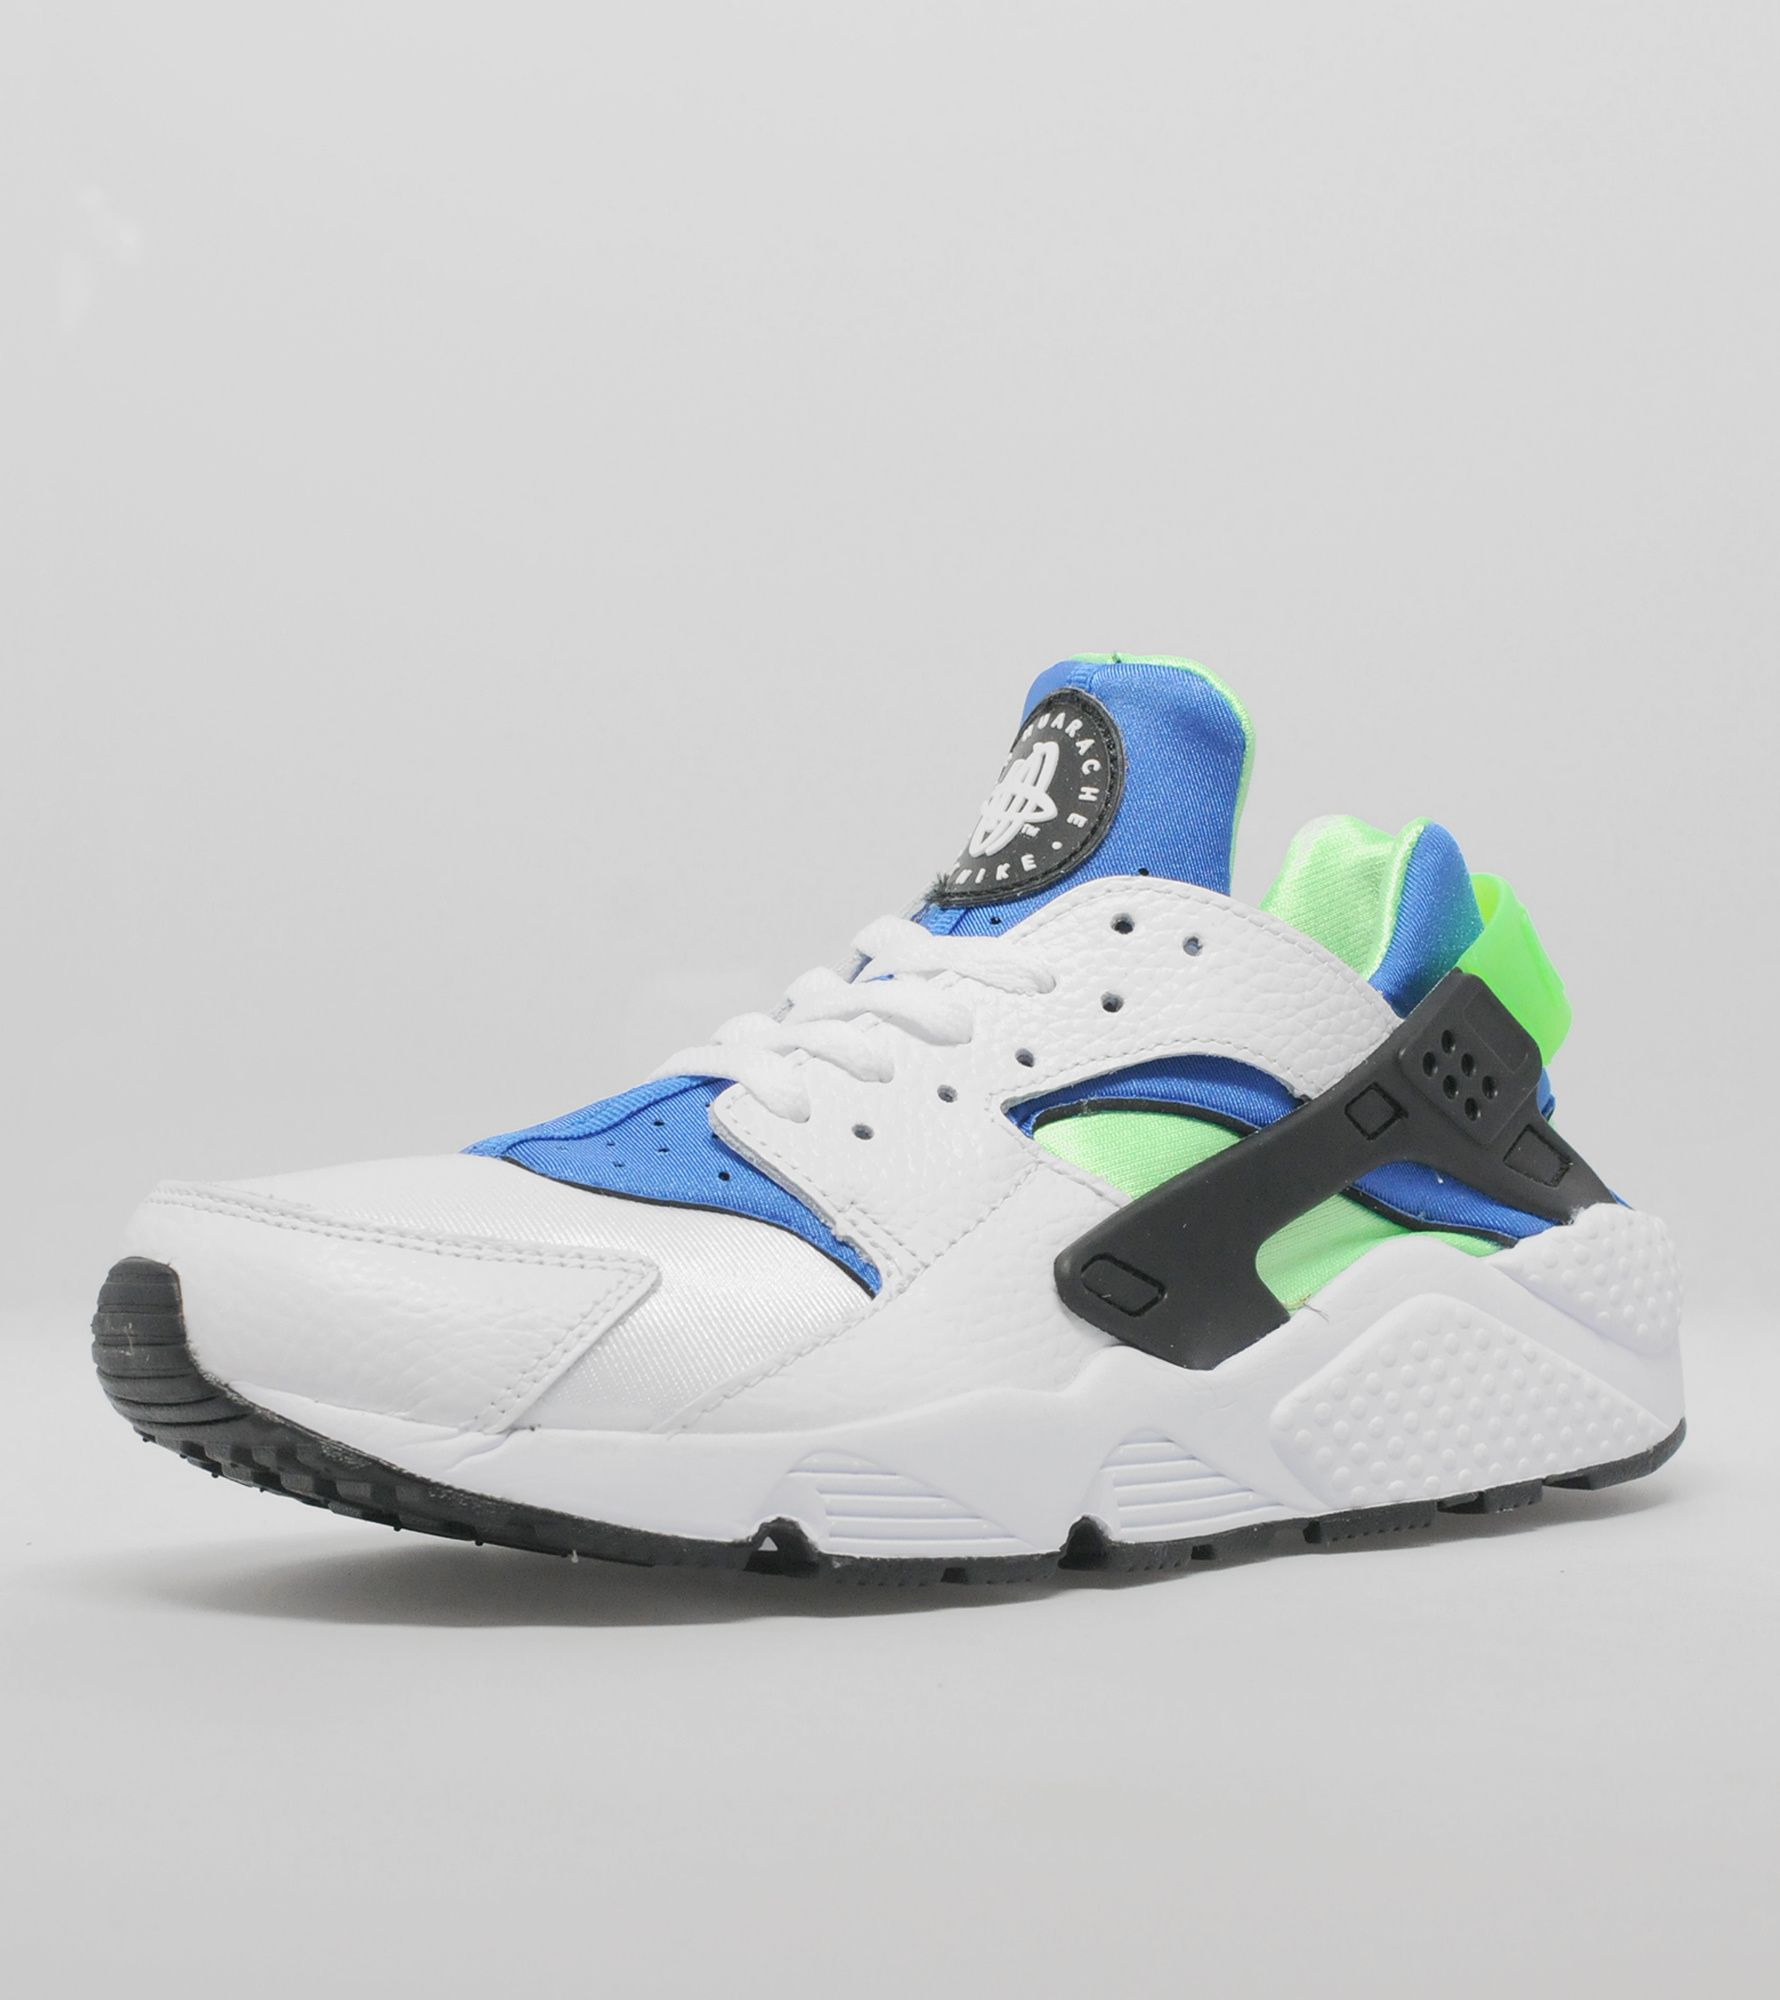 8d6b68edd6cf0c Nike Air Huarache  Scream Green